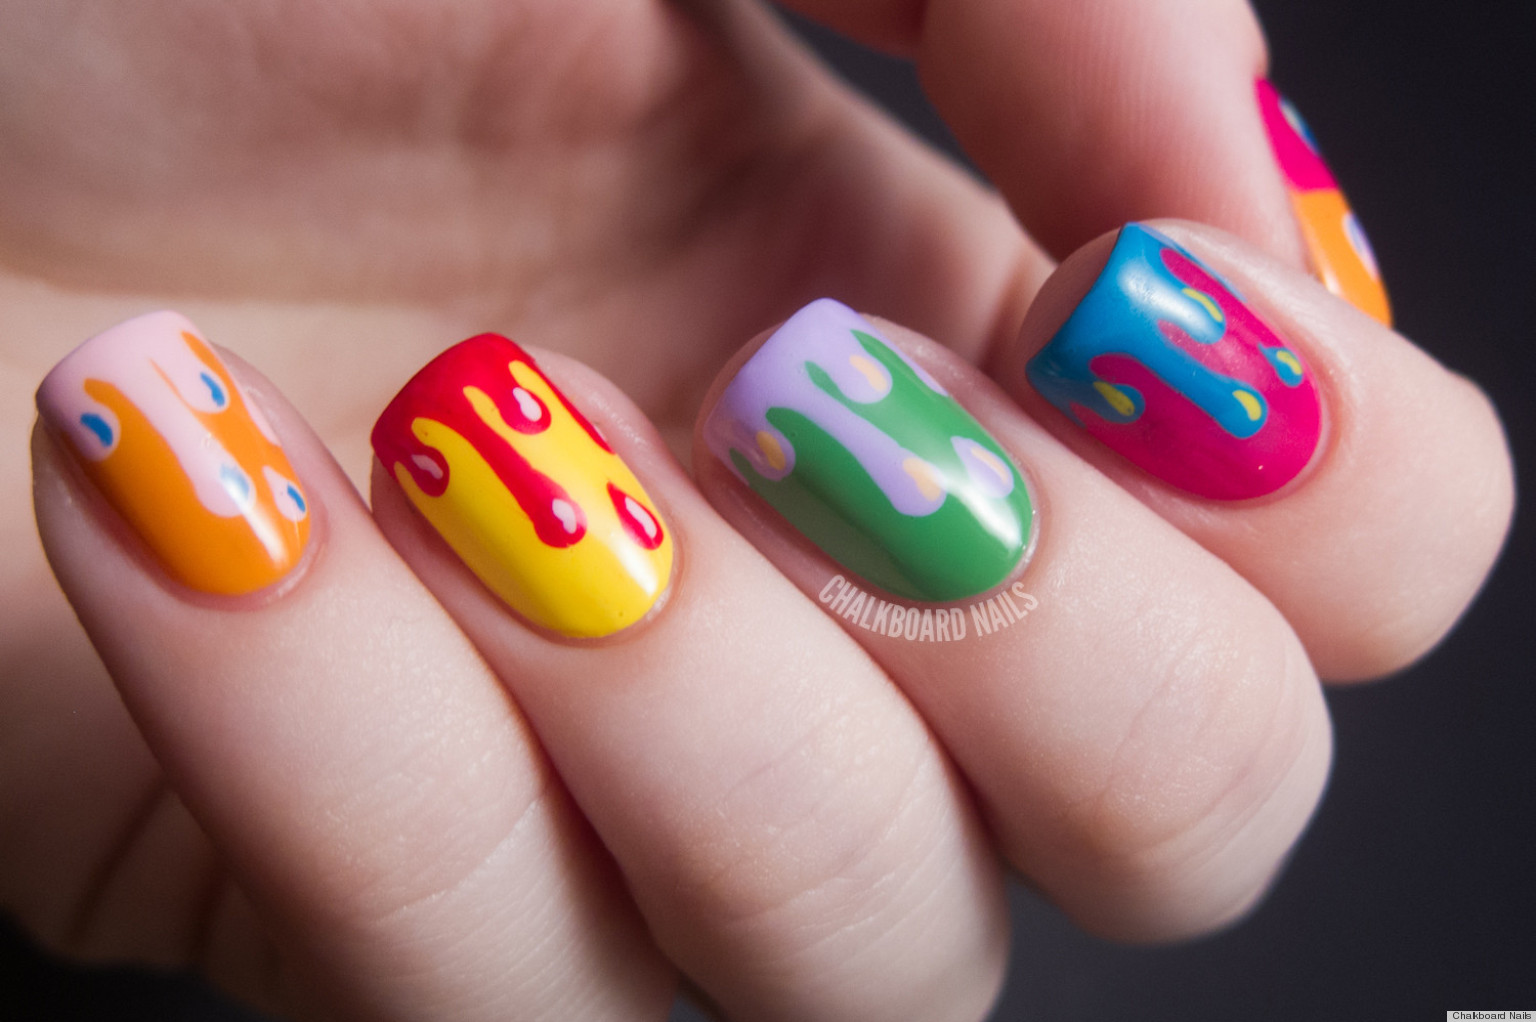 Diy Nail Ideas Paint Drip Nail Art And More Of Our Manicures From This Weekend Photos Huffpost